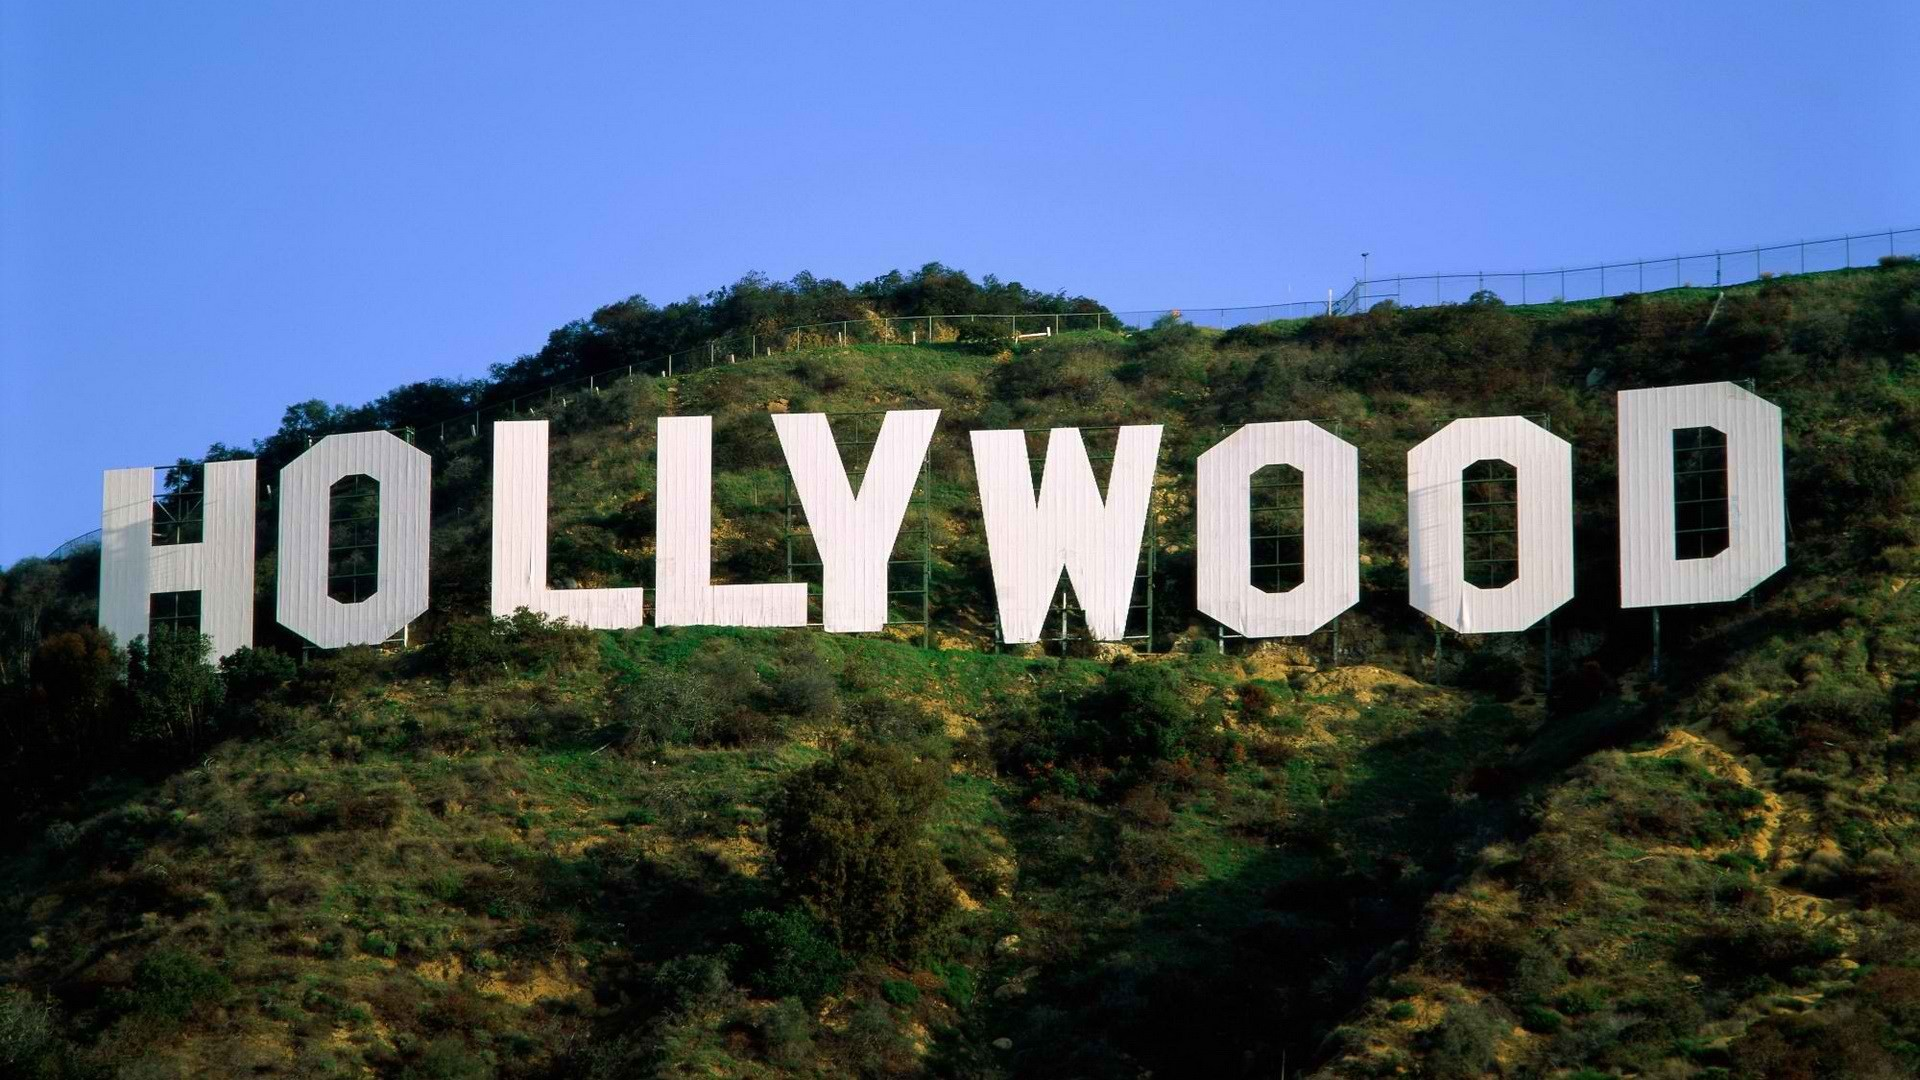 Most Inspiring Wallpaper Mountain Hollywood - hollywood-mountains-image  Perfect Image Reference_113615.jpg